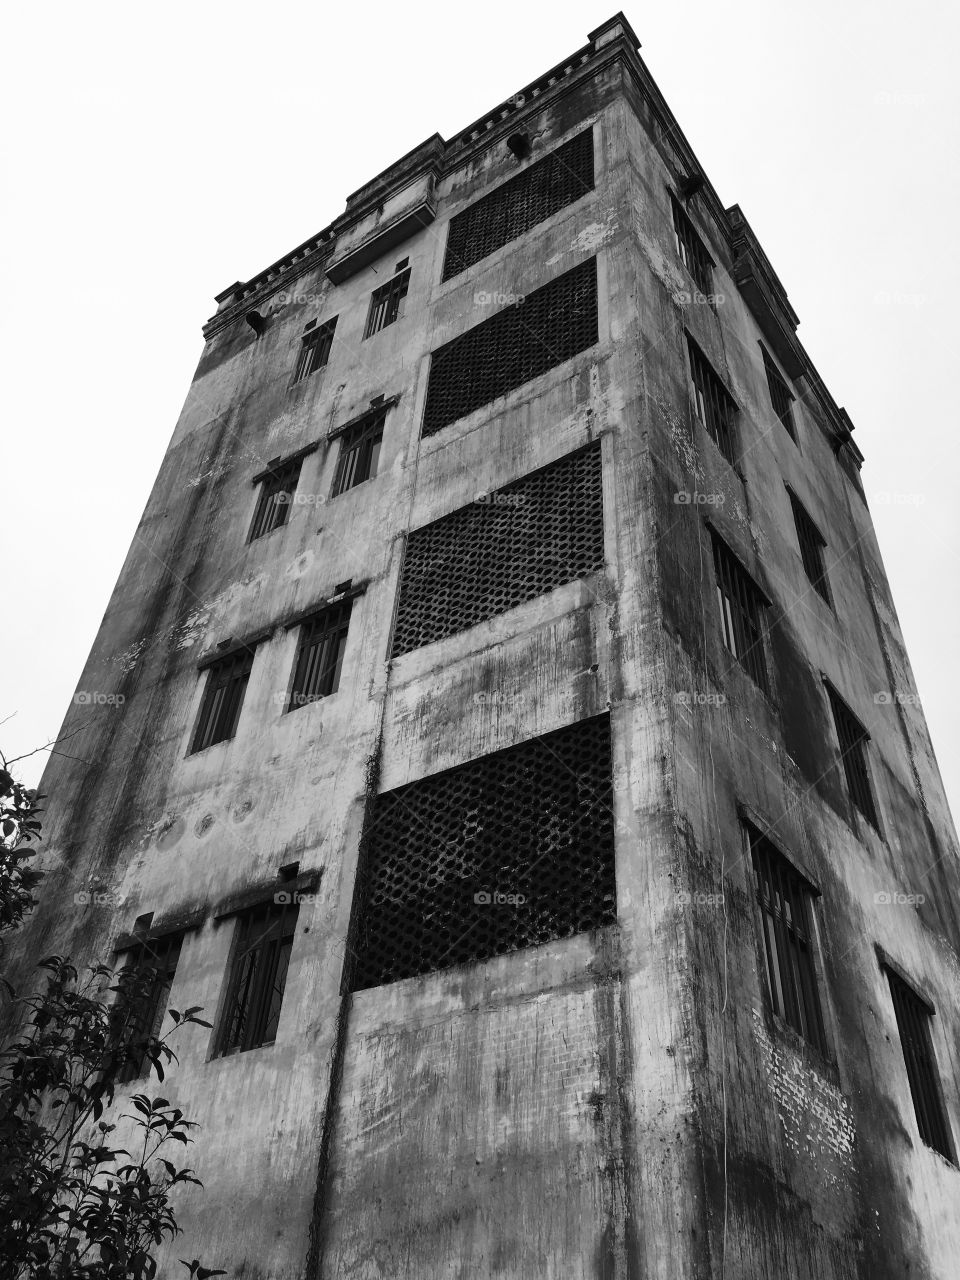 Derelict Building in Shenzhen, China